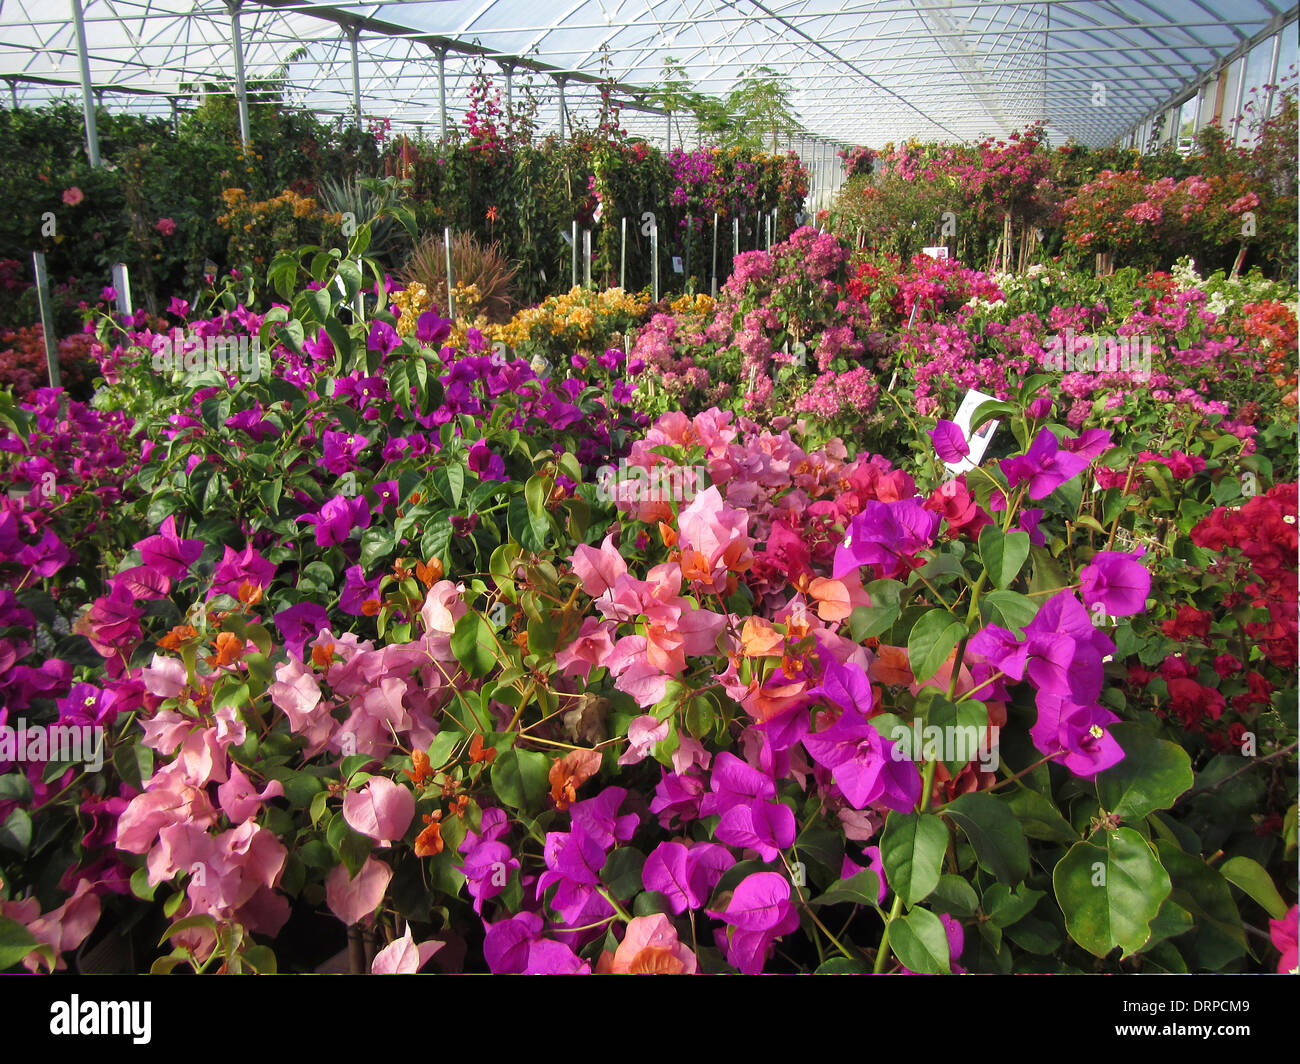 Various colors of Bougainvillea plants blossoming in a nursery hot house. - Stock Image